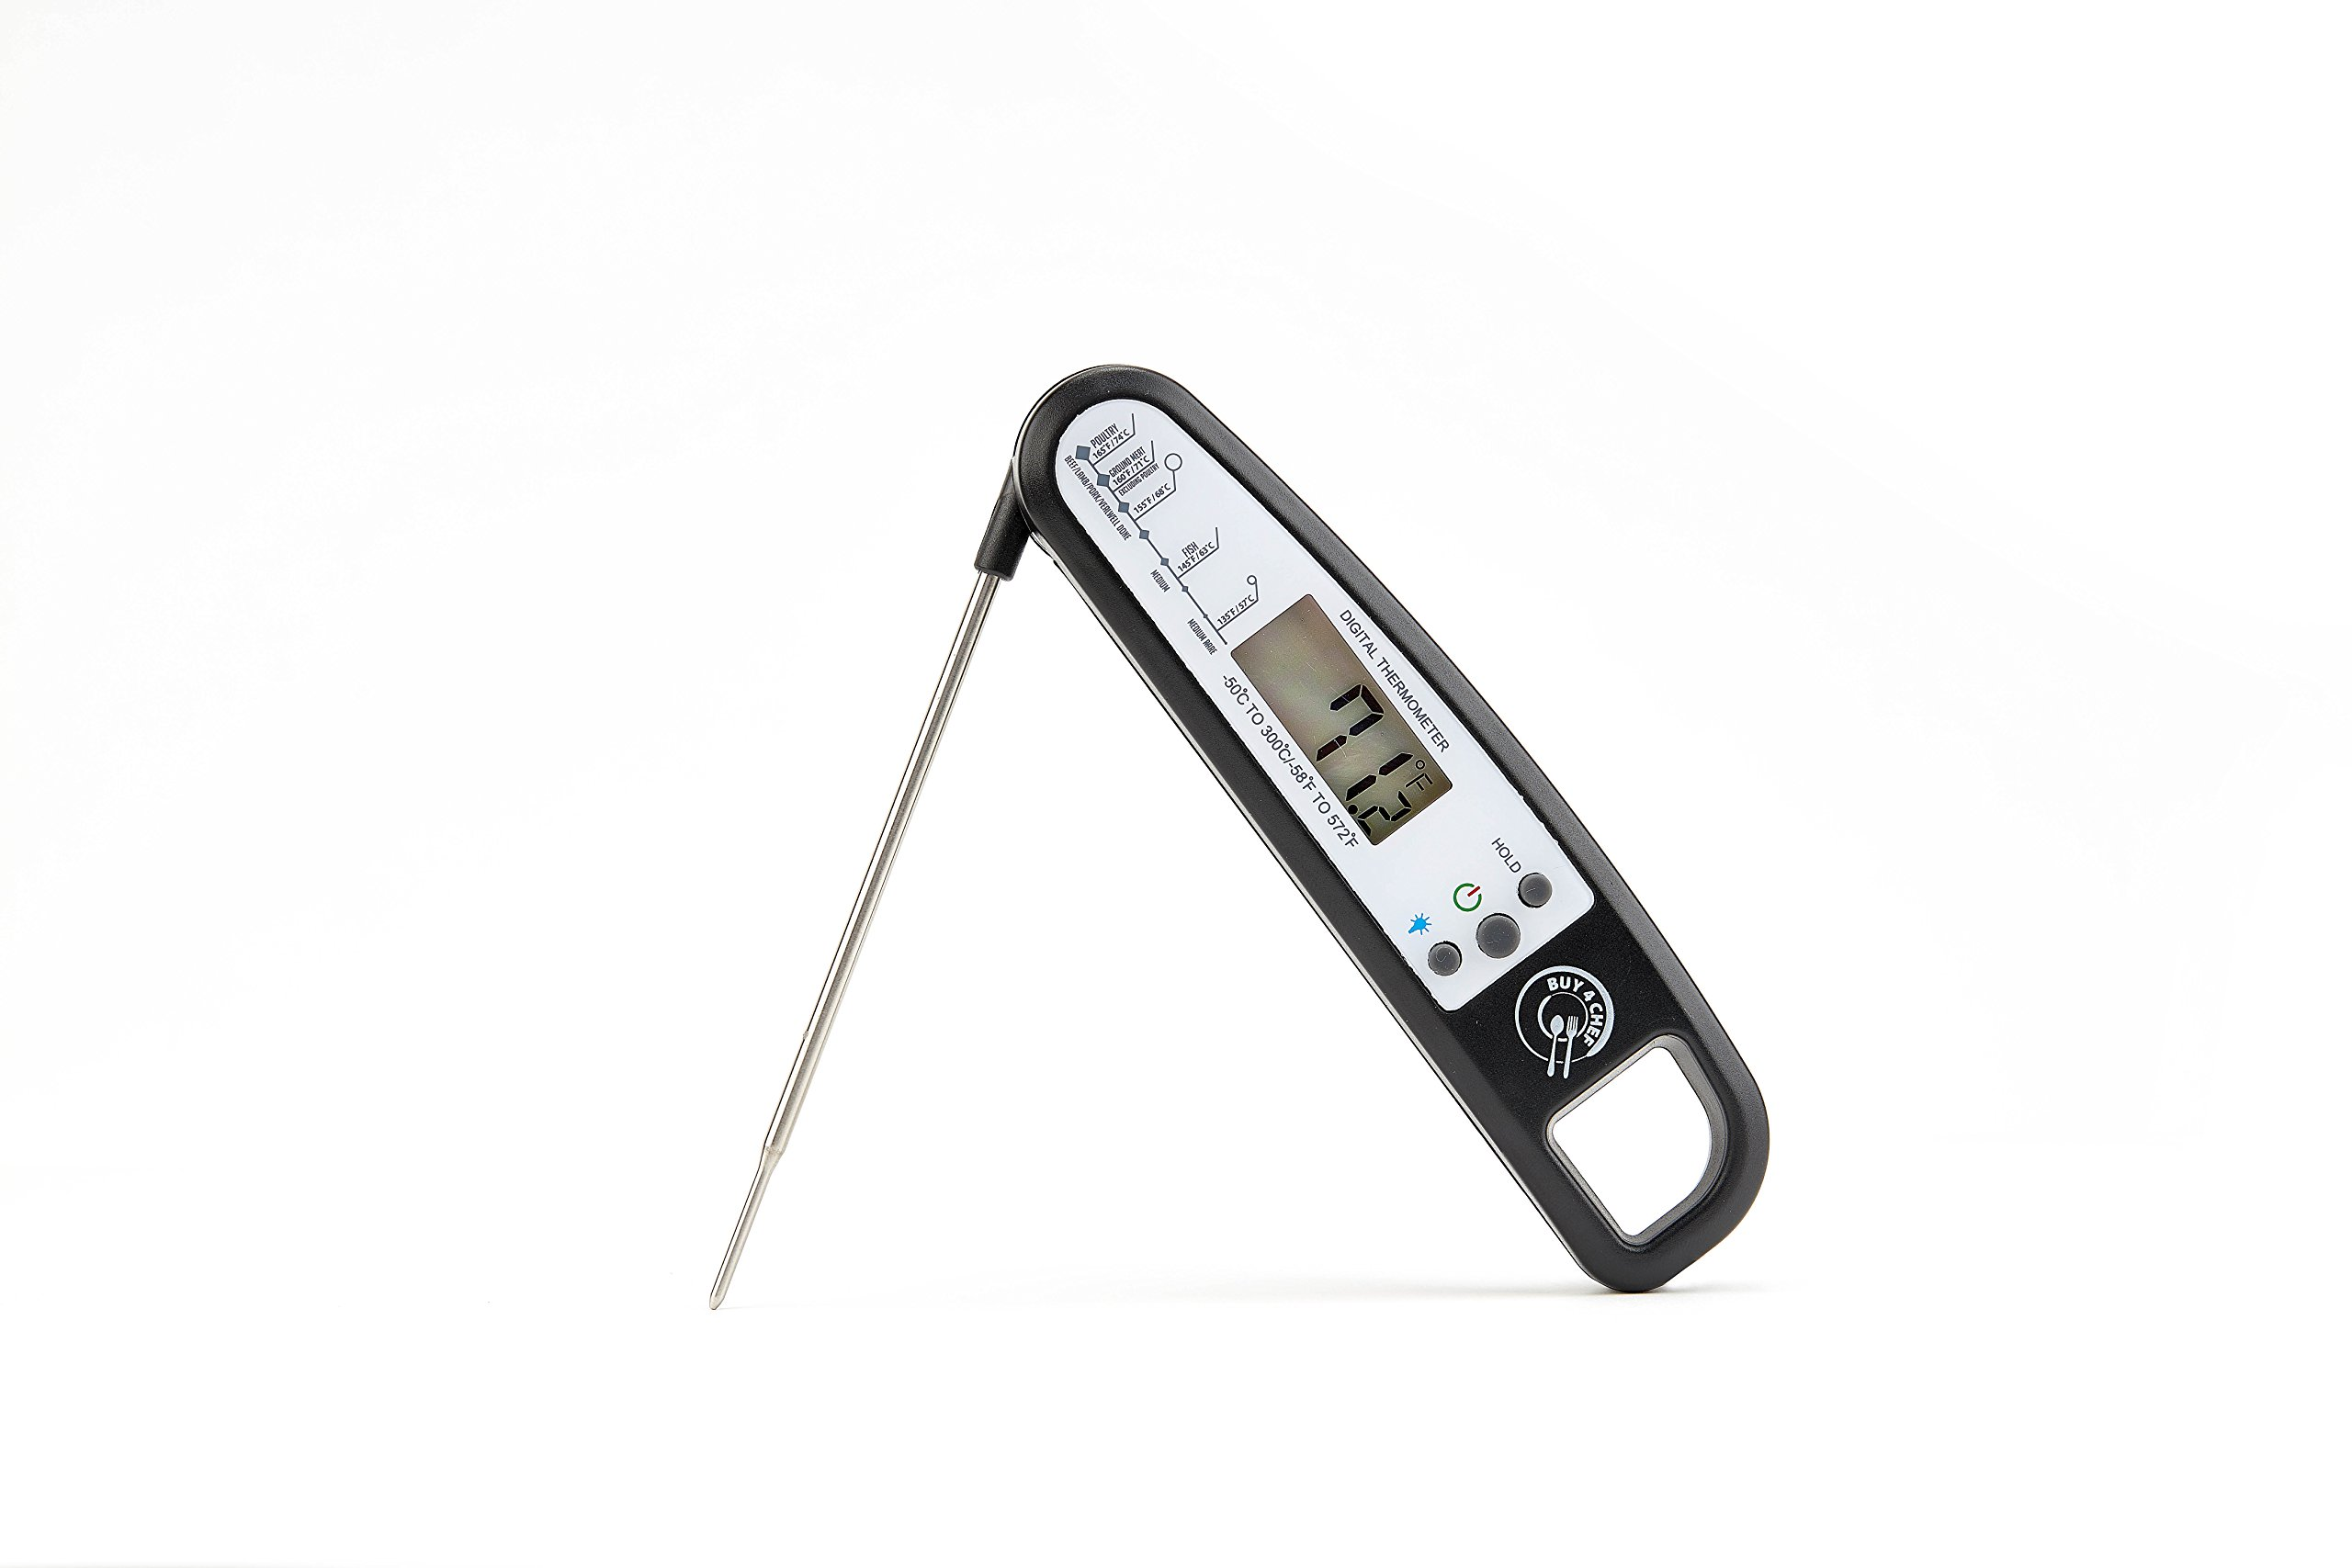 Buy4Chef Splash Proof, Instant Read Digital Food Thermometer with Back Light | Food Grade Stainless Steel Probe & Durable Plastic Housing | Bonus Meat Temperature Guide & eBook (Black)